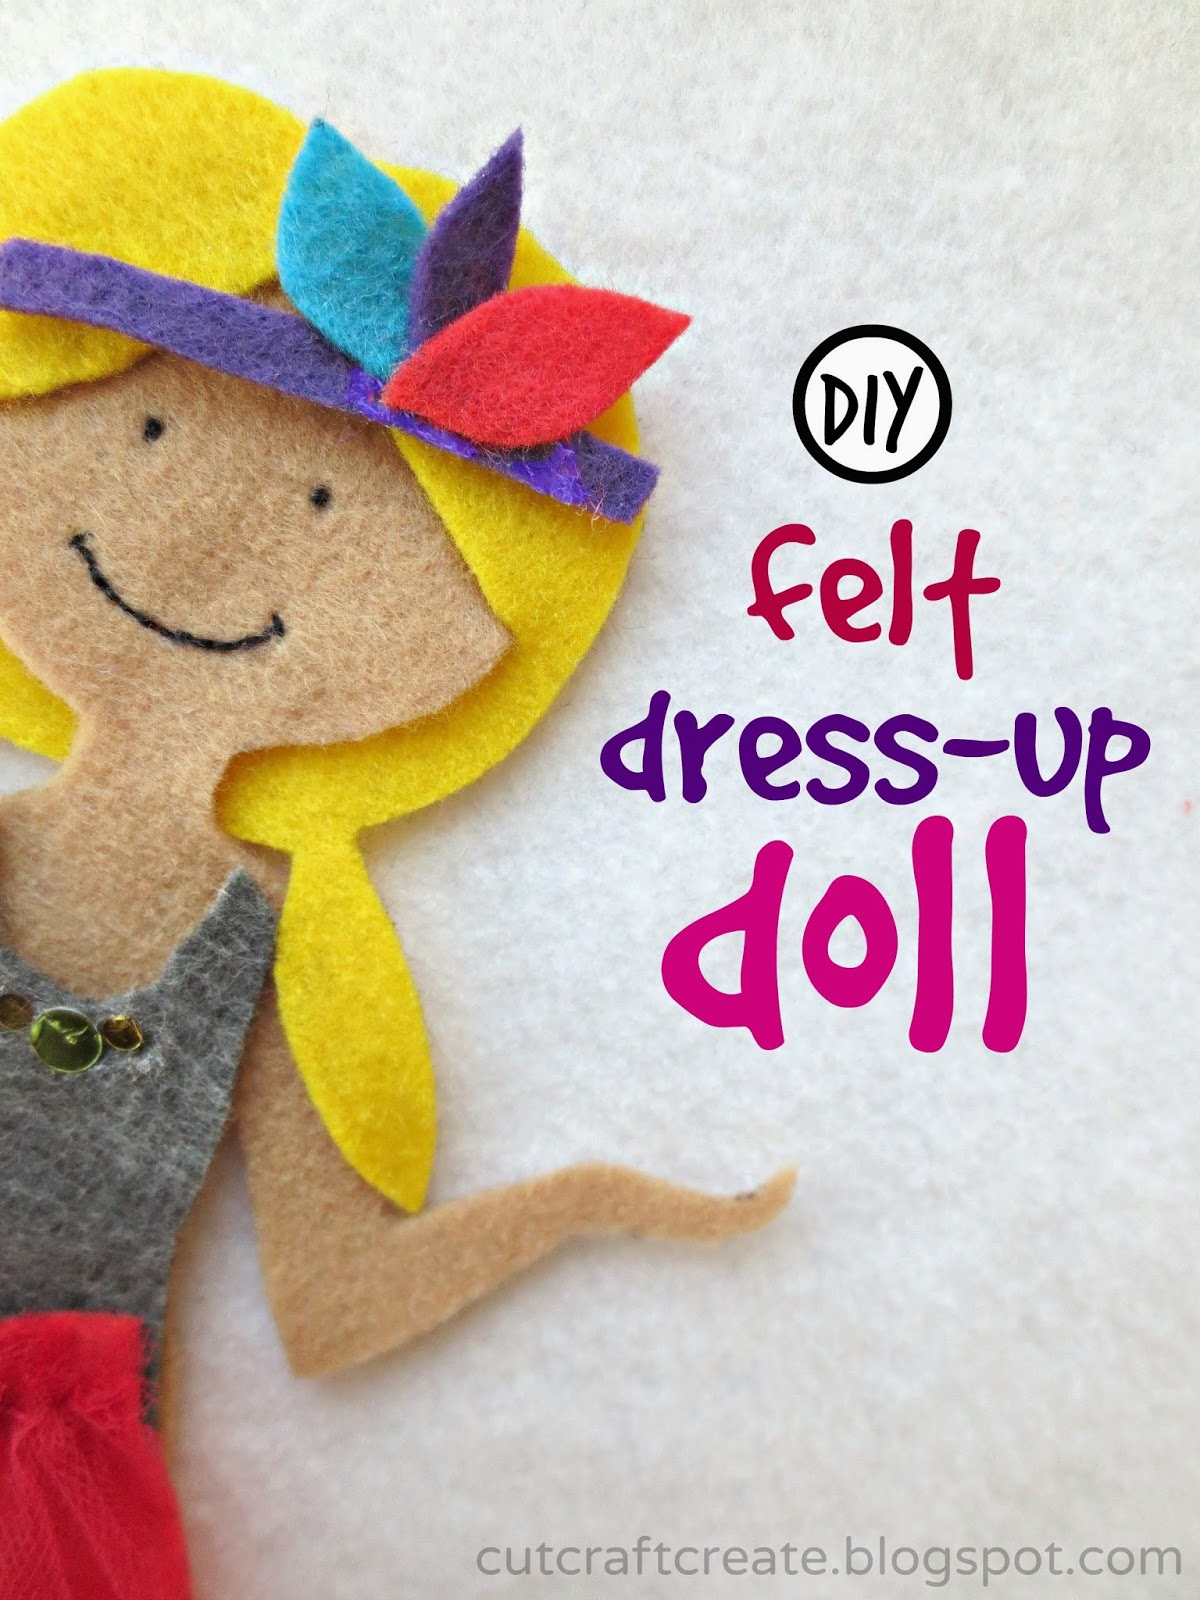 Cut craft create diy felt dress up doll for Felt dress up doll template